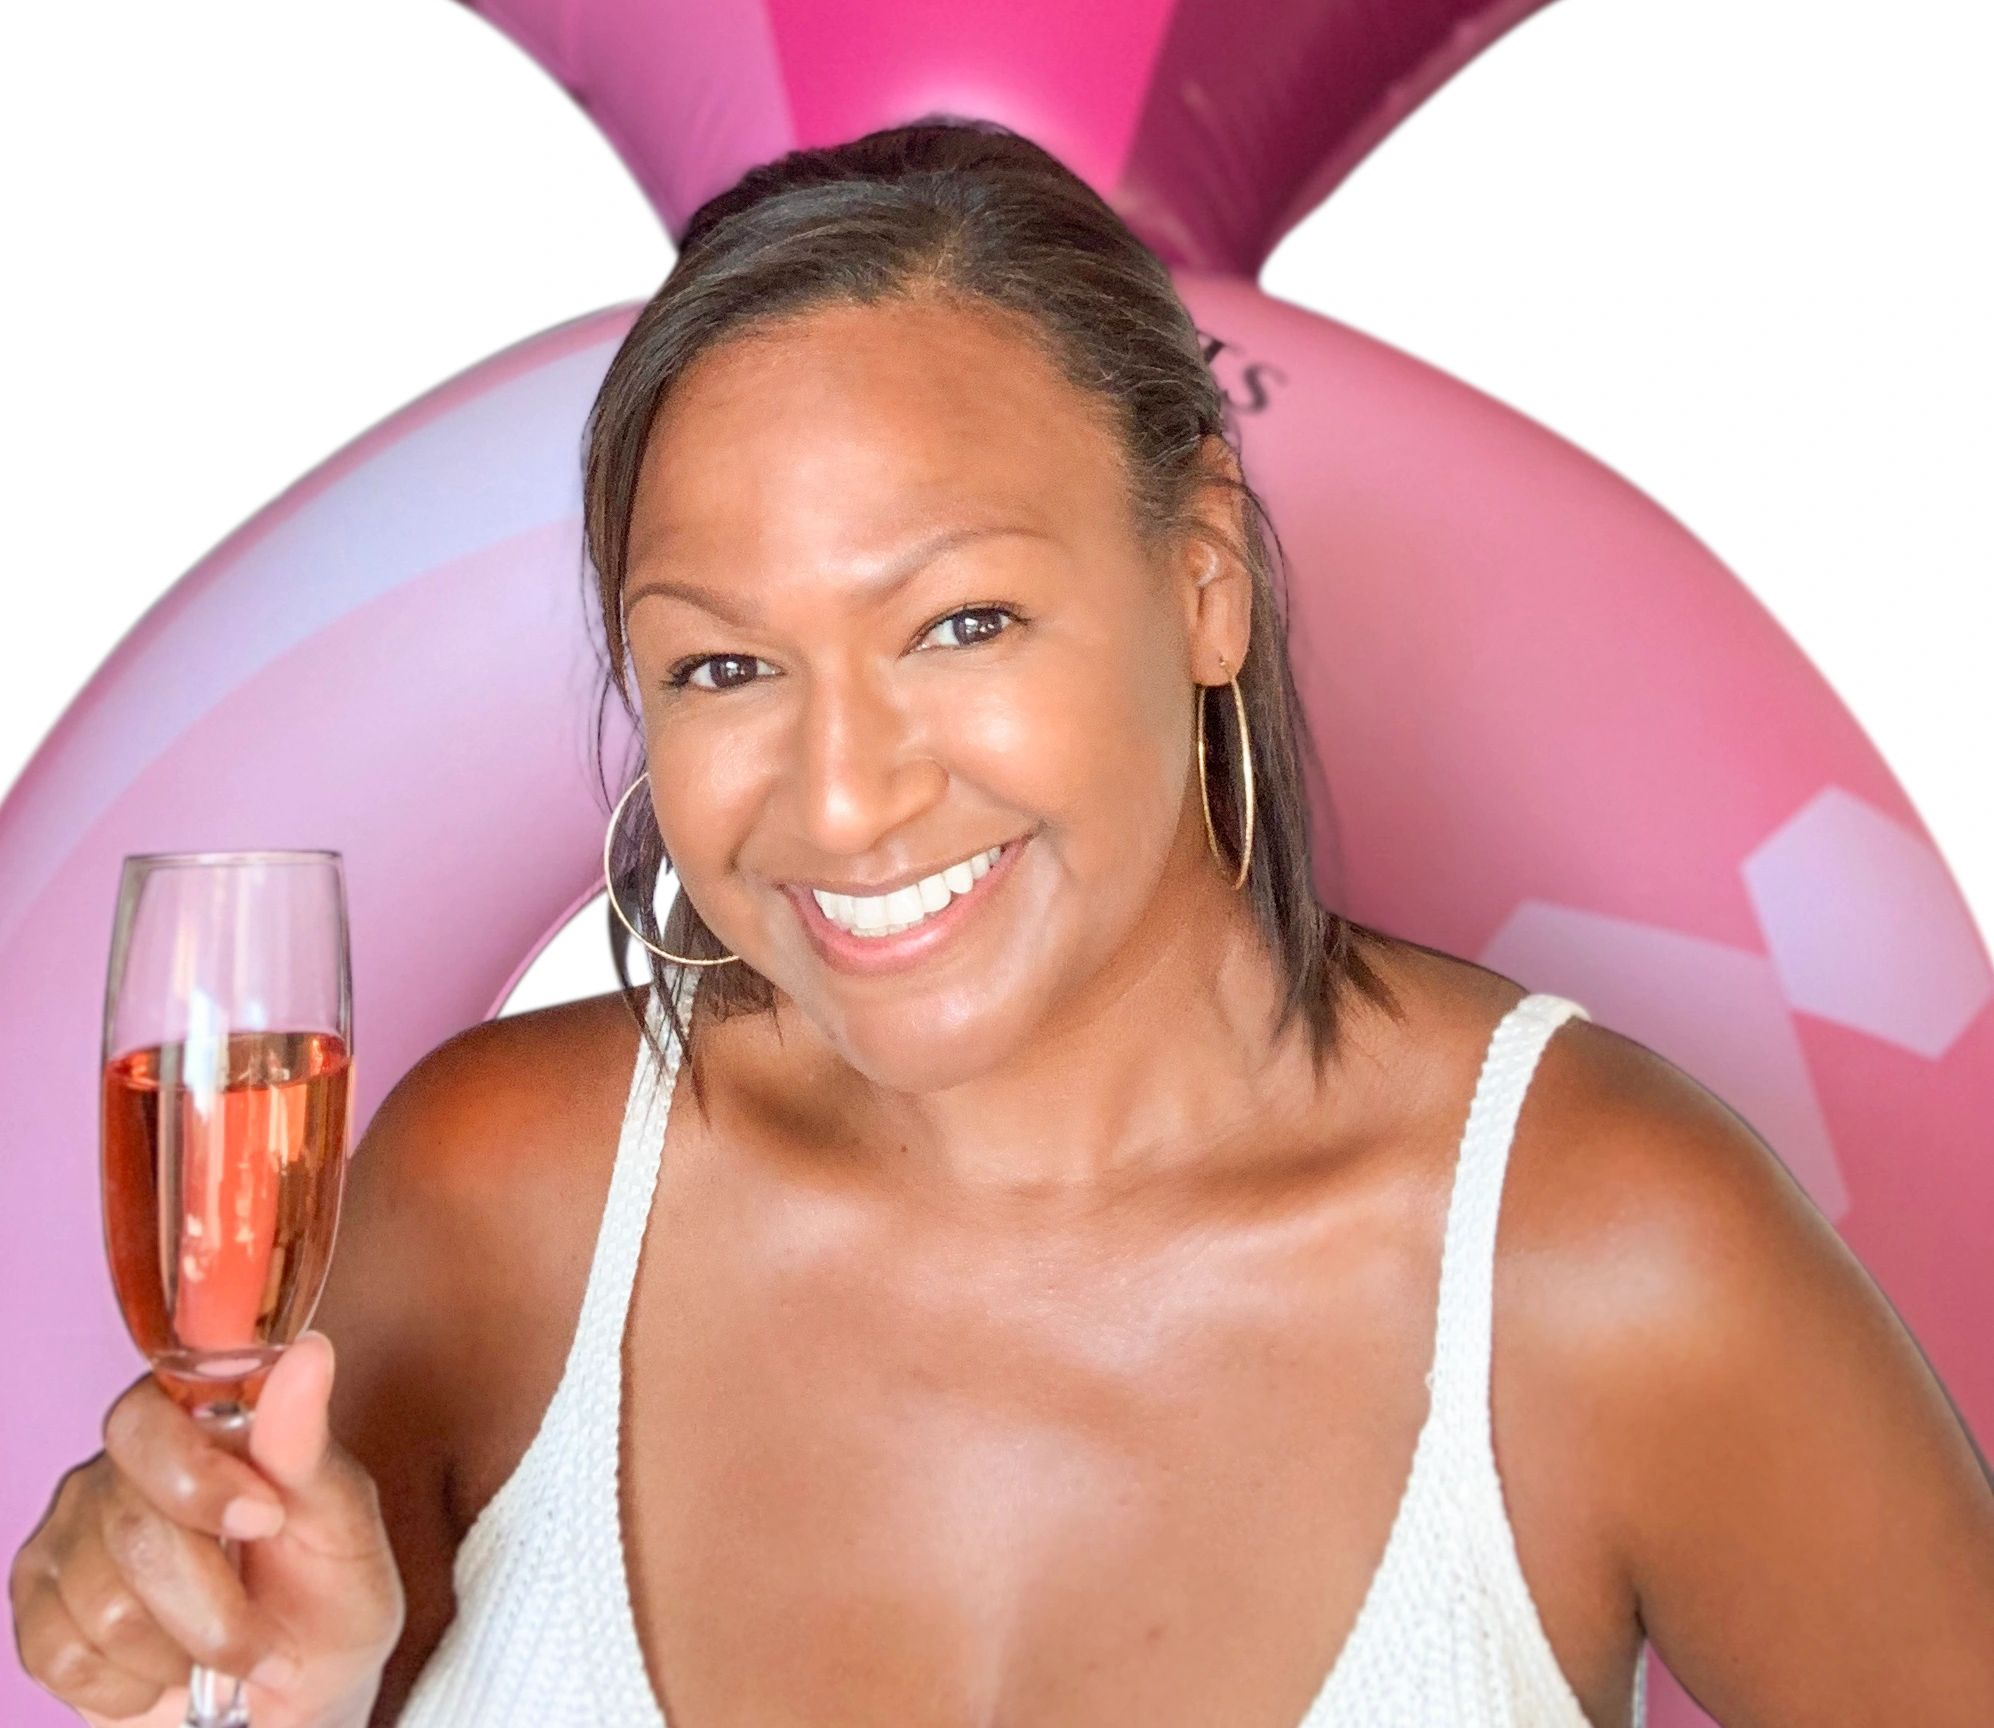 Shantae Jones, founder and Chief Bubbly Officer of Fizz Bubbly Bar.